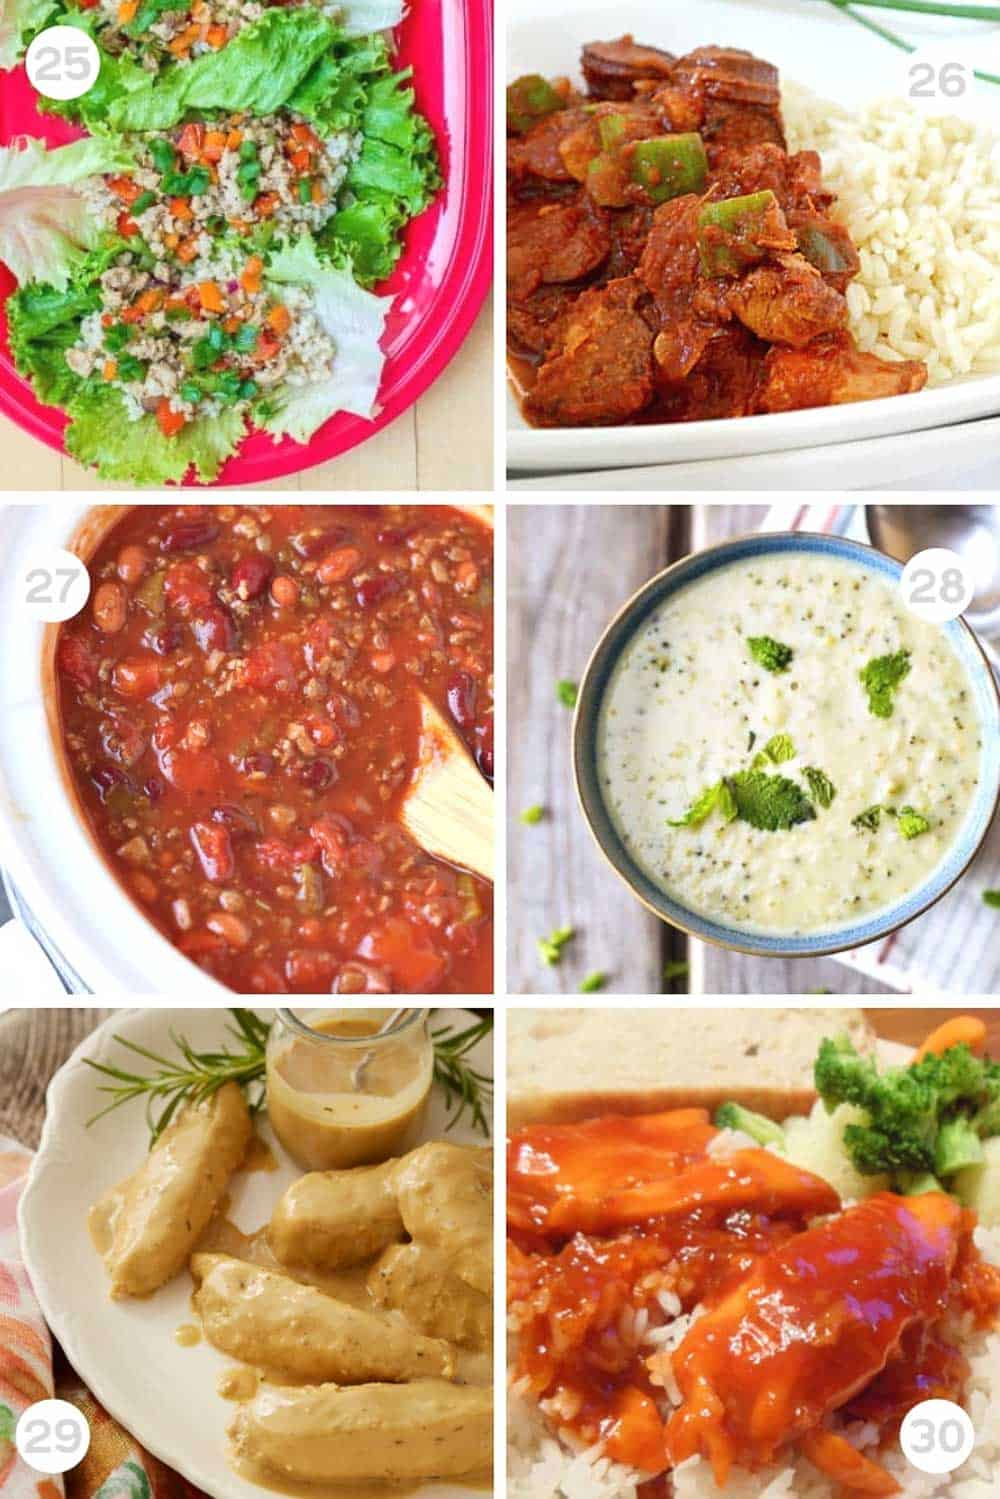 6 Different Healthy freezer slow cooker meals numbered 25-30